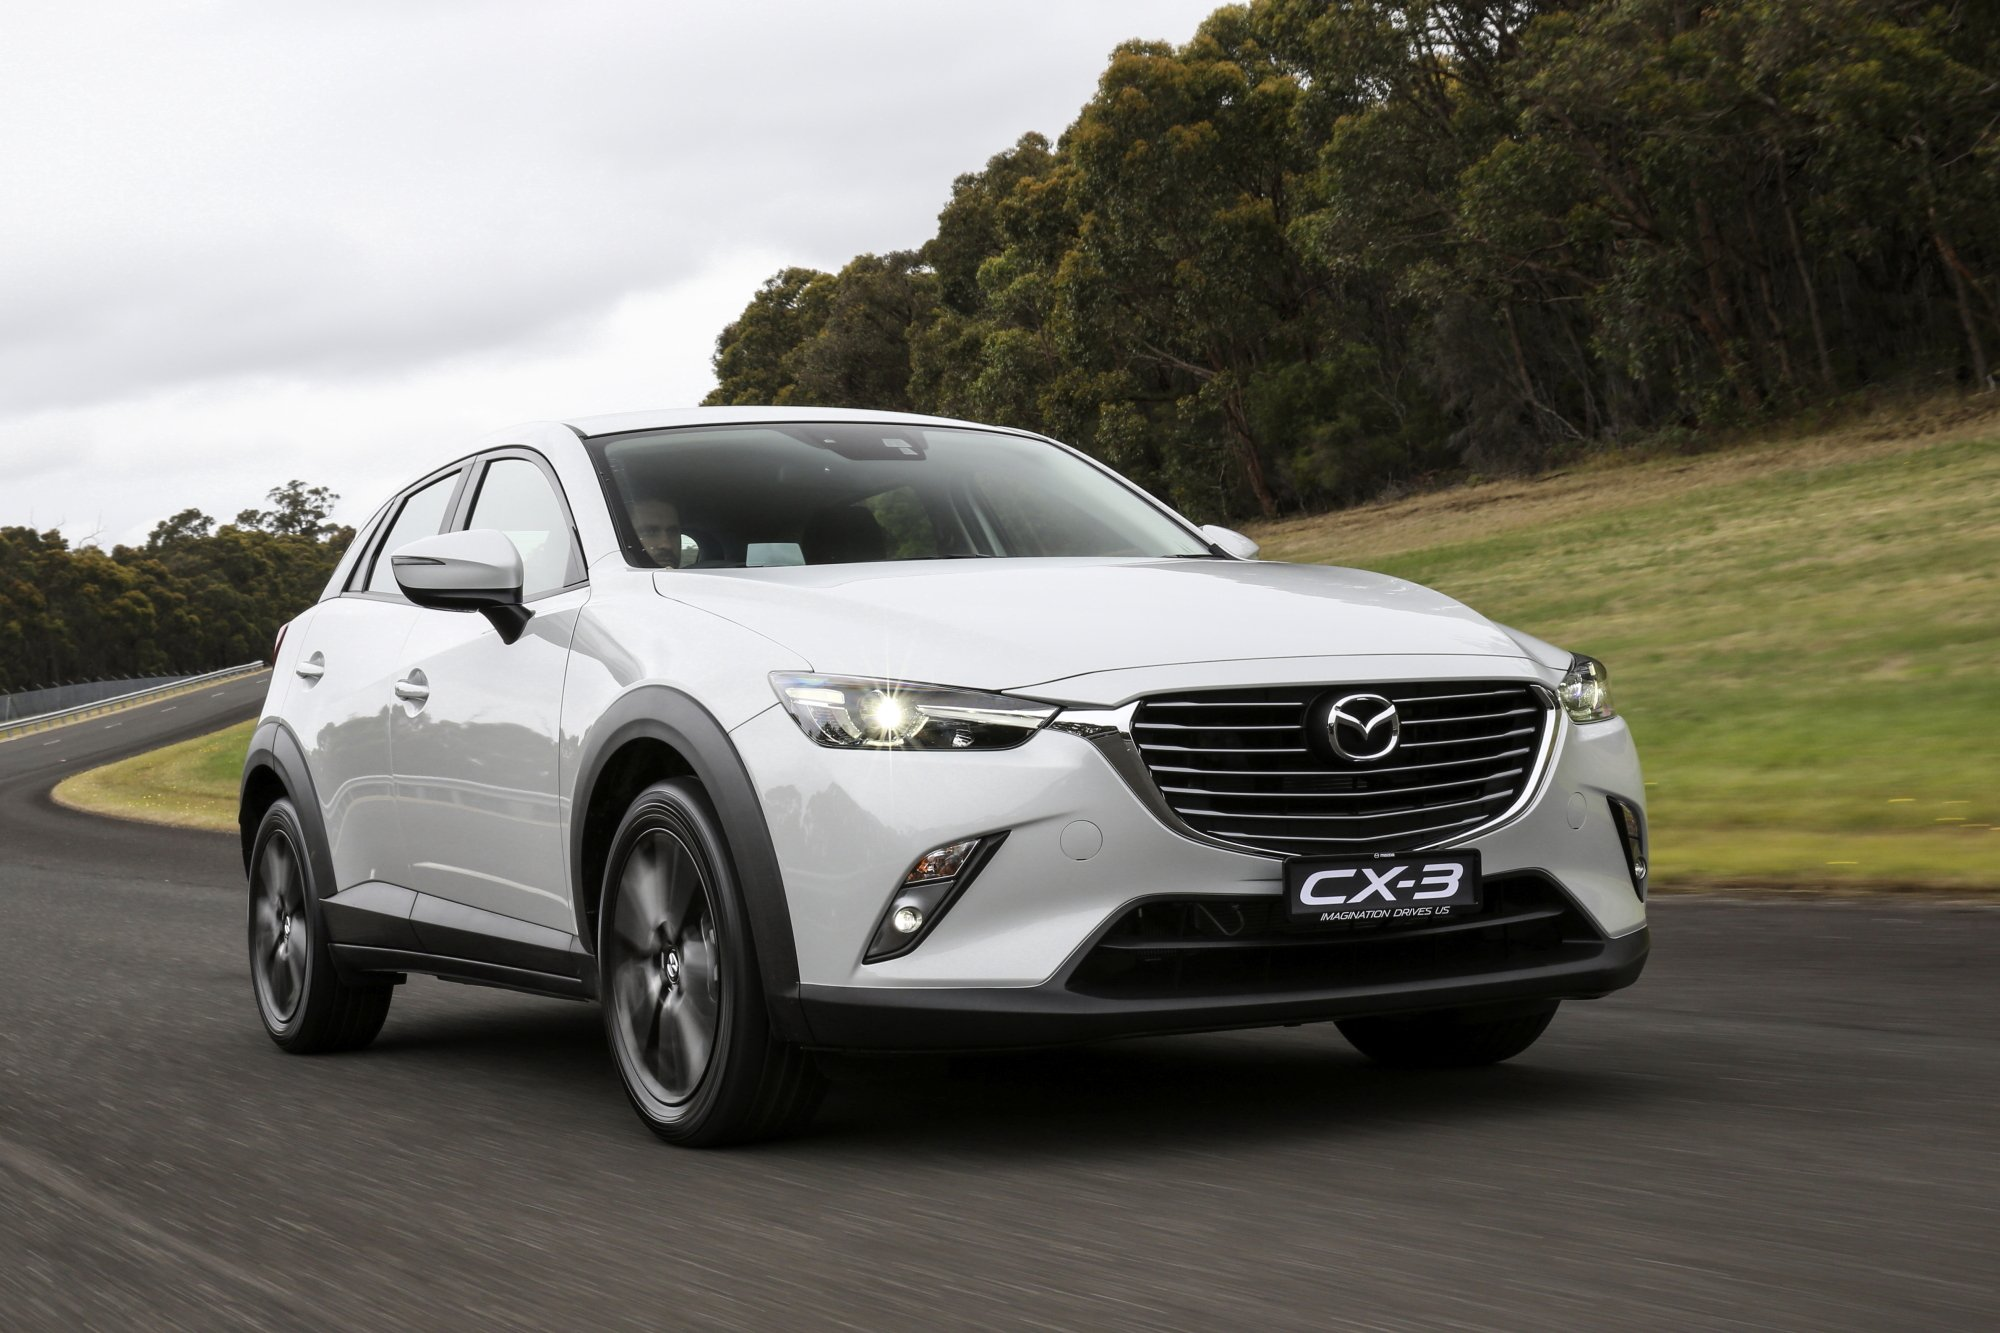 2015 Toyota Corolla Price >> 2015 Mazda CX-3 Review | CarAdvice